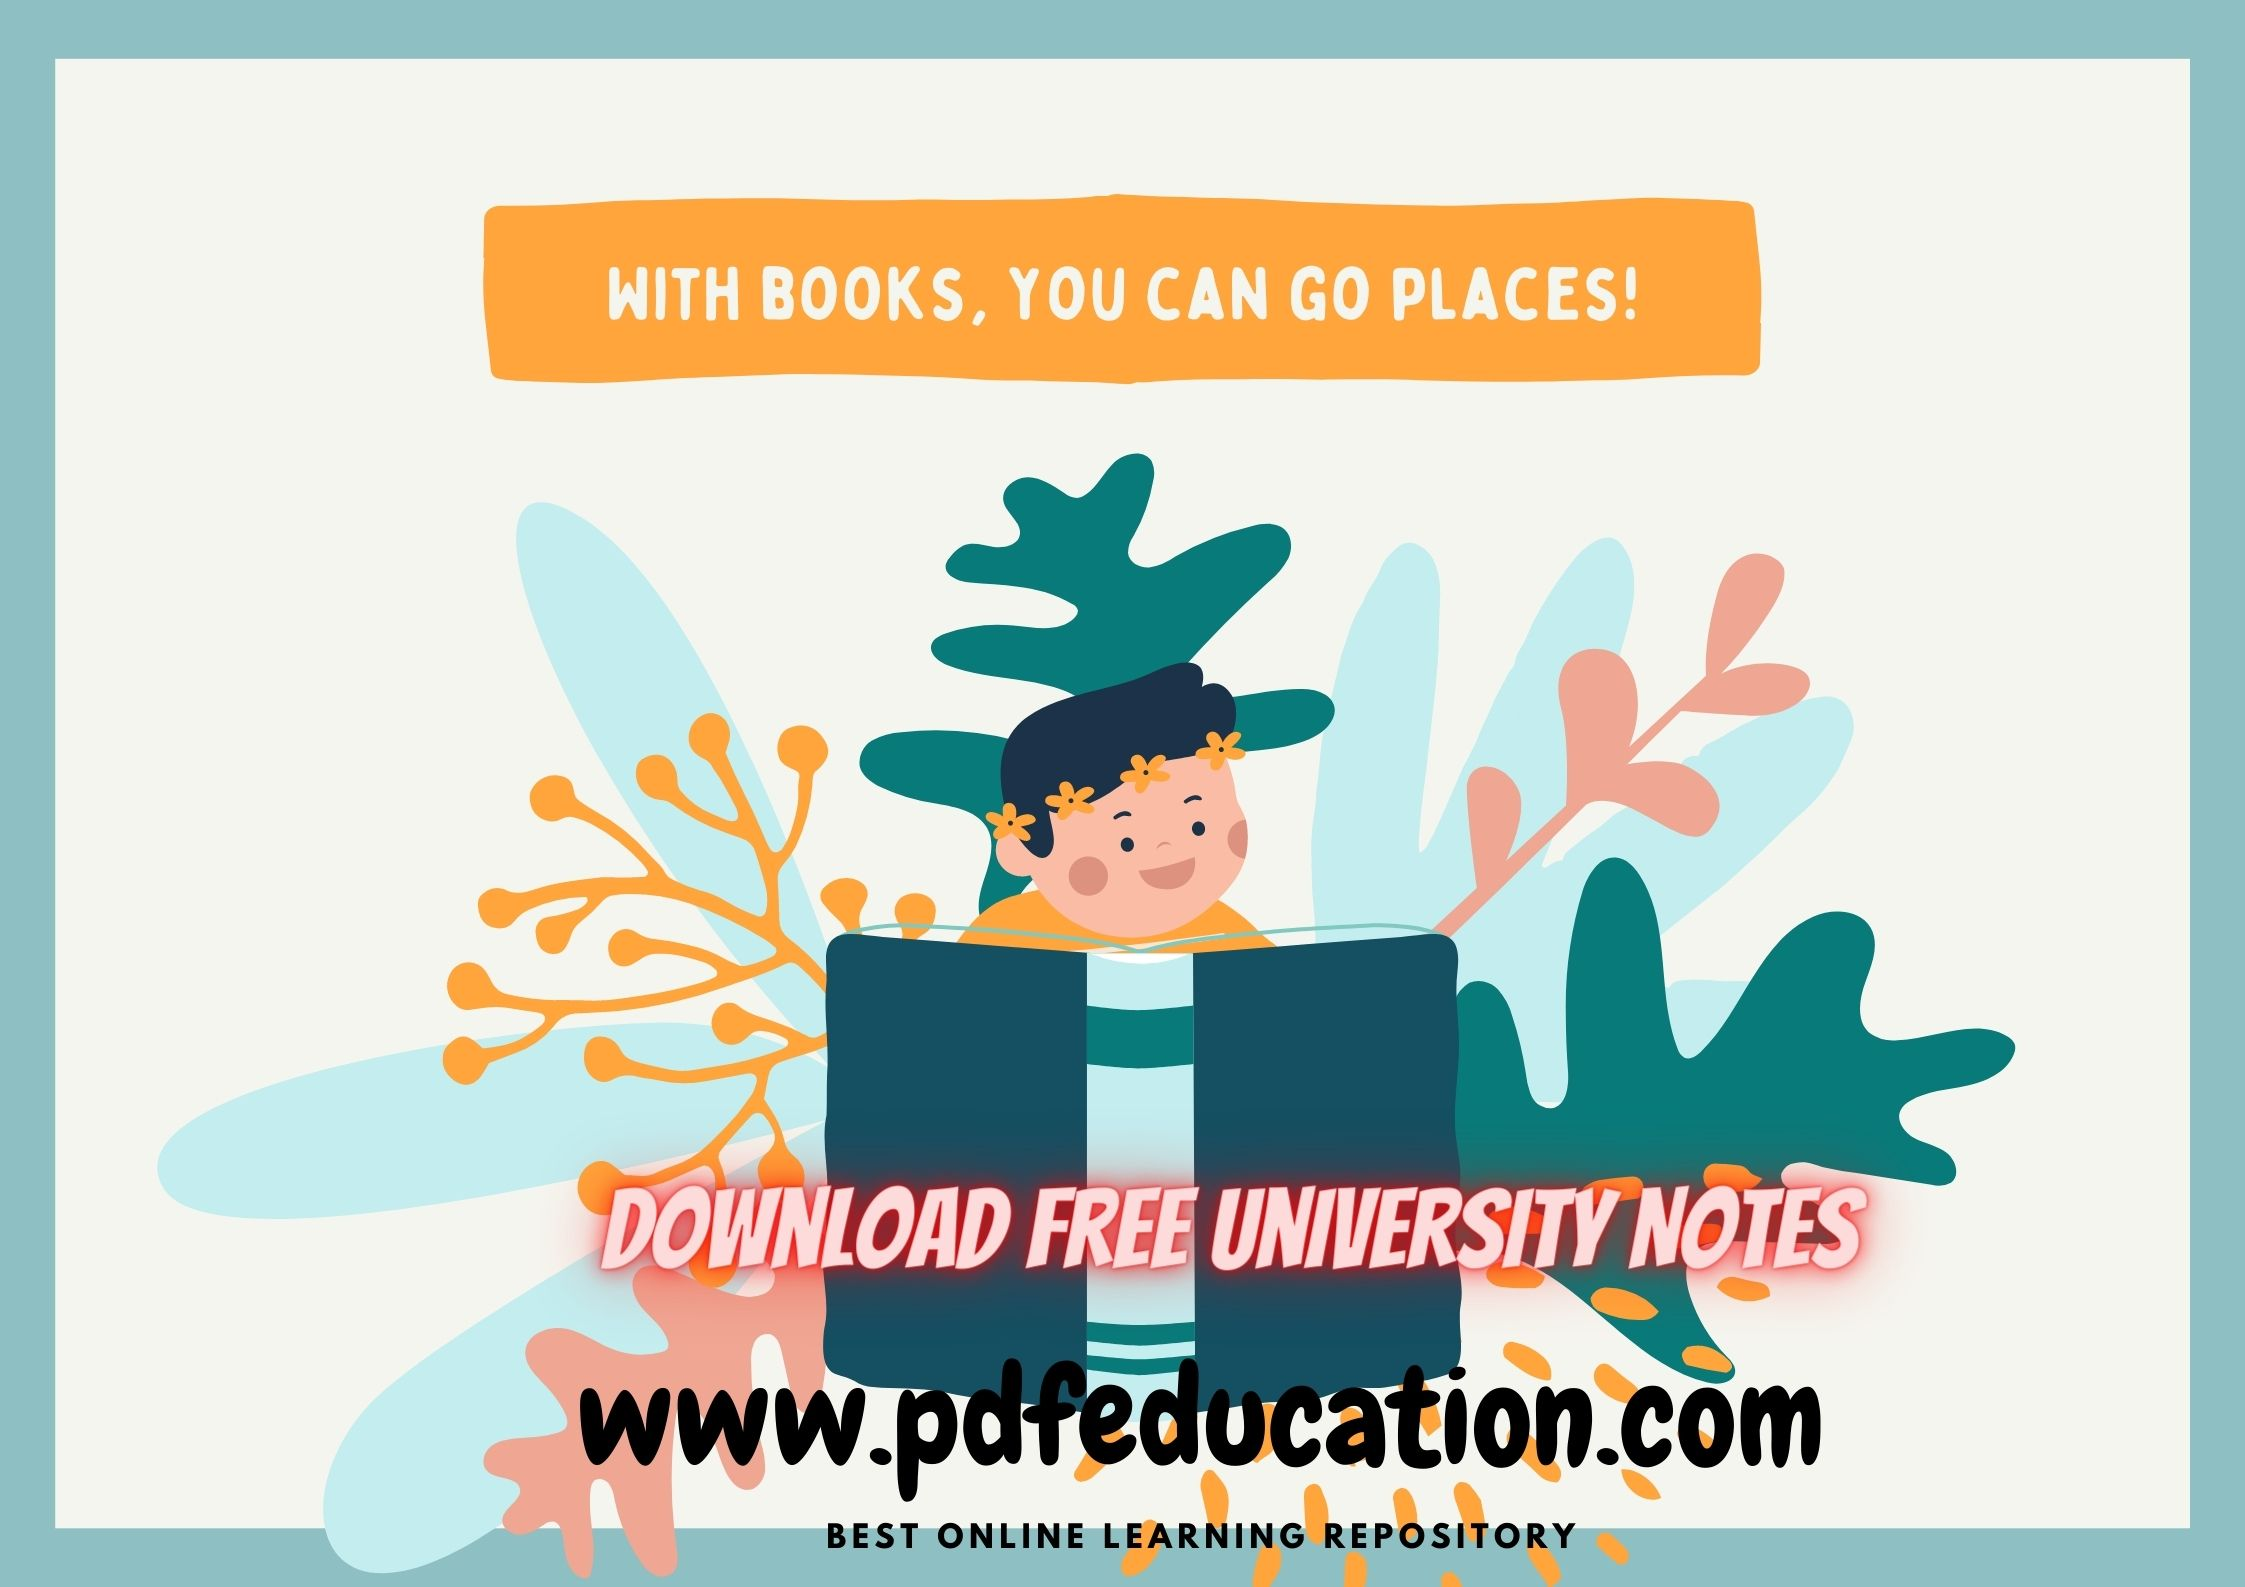 Access Free University Notes and Past Papers in Kenya